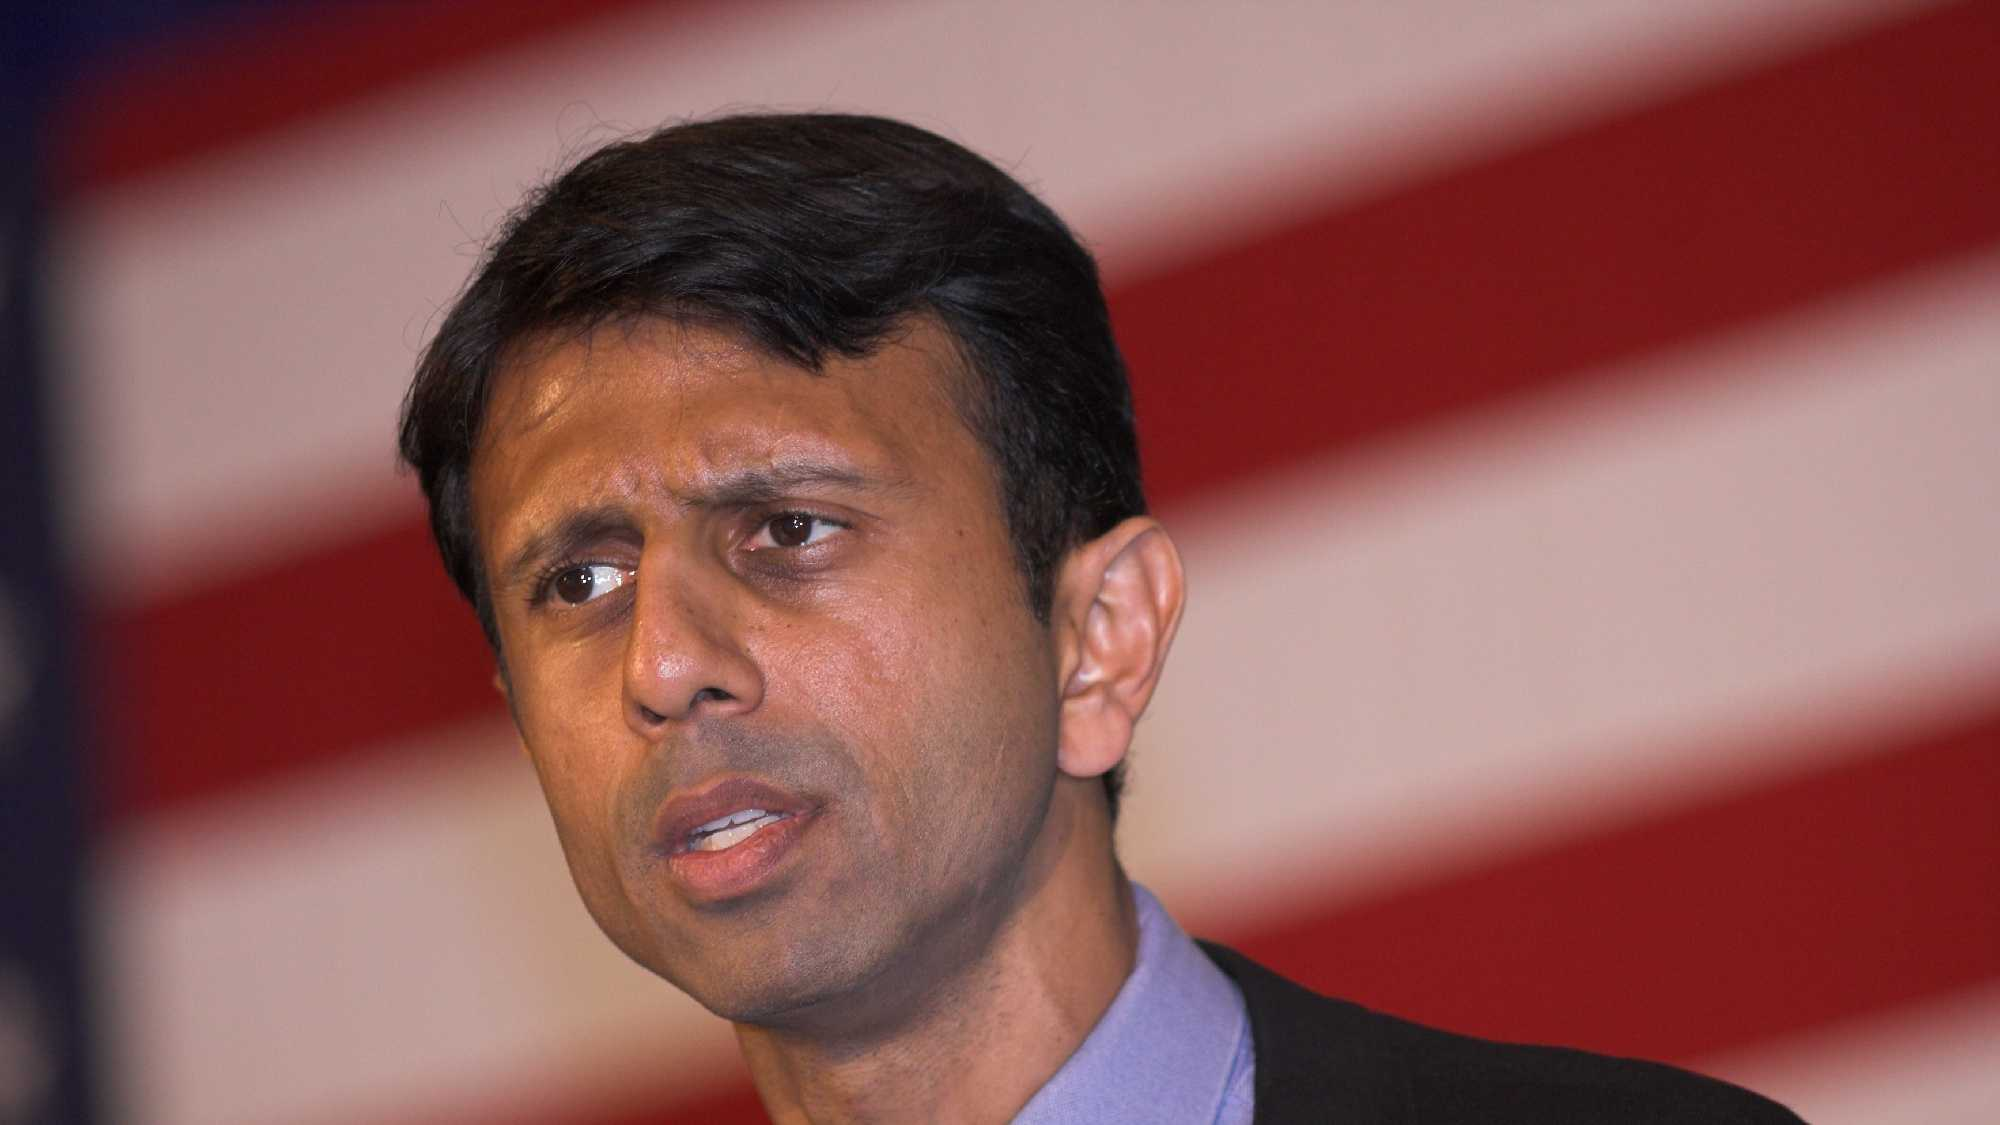 Aug. 13, 2015: Gov. Bobby Jindal issues statement after HDLC and HRC vote to recommend removal of monuments. The once presidential candidate instructs staff to look at what powers the governor's office has in stopping the removal process.